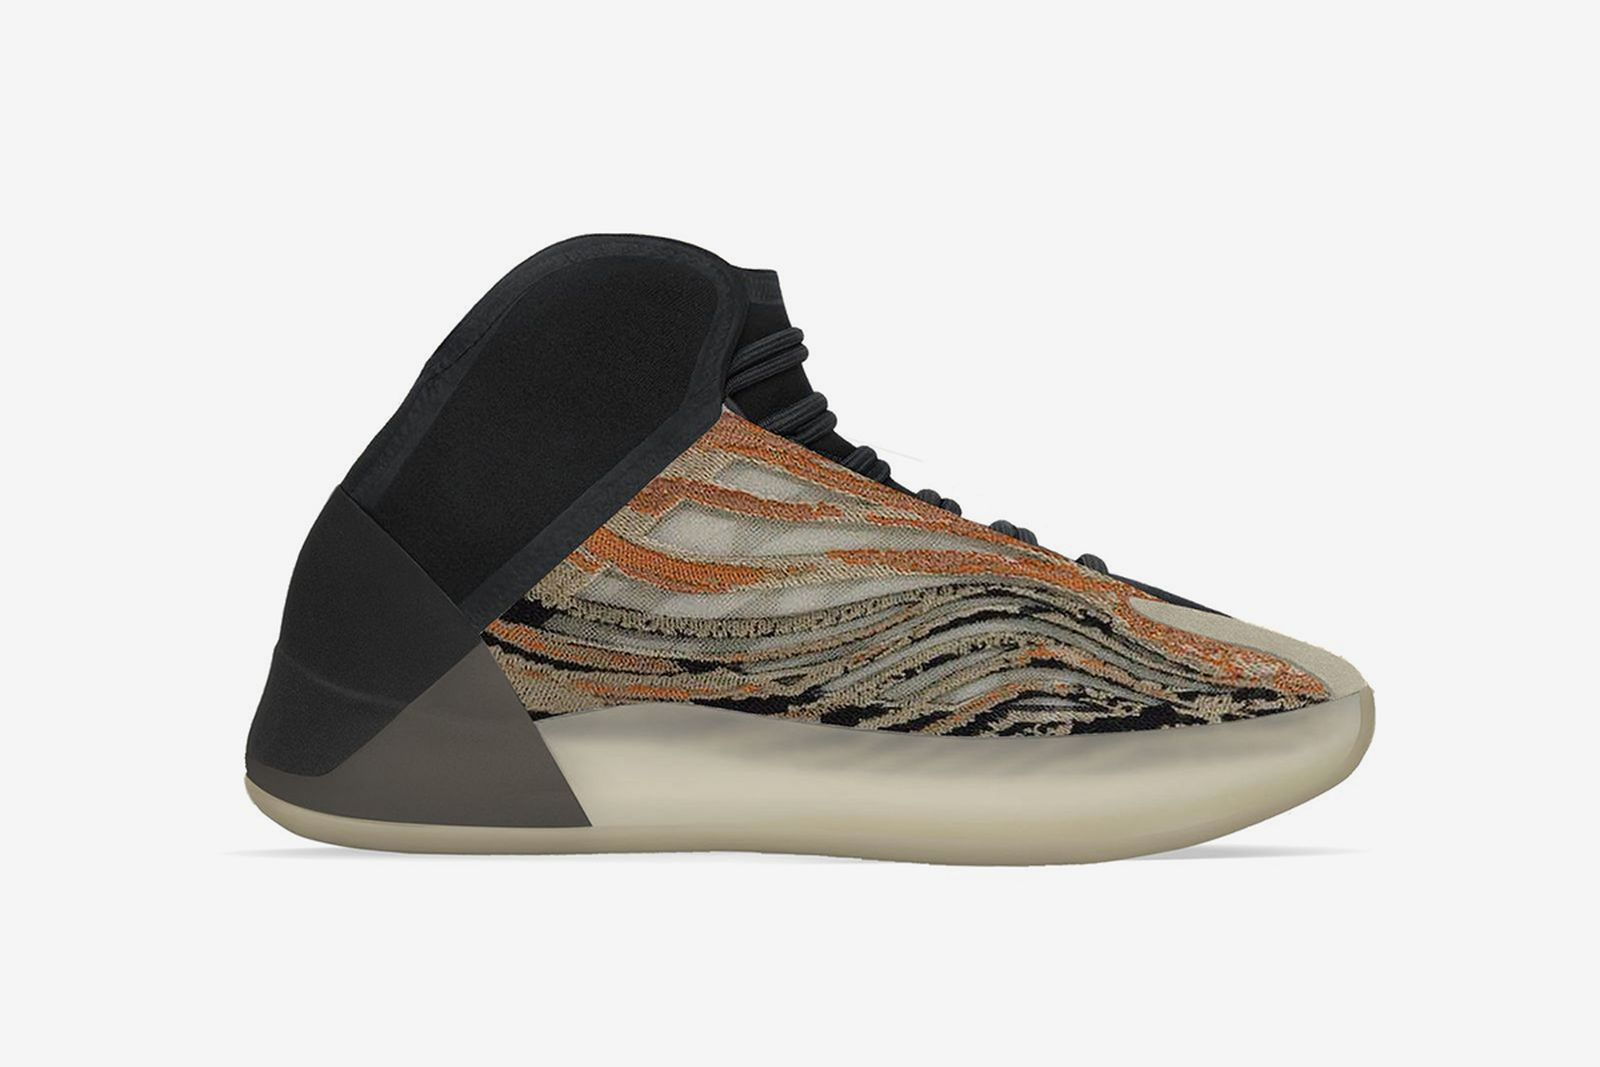 adidas-yeezy-spring-summer-2021-releases-14